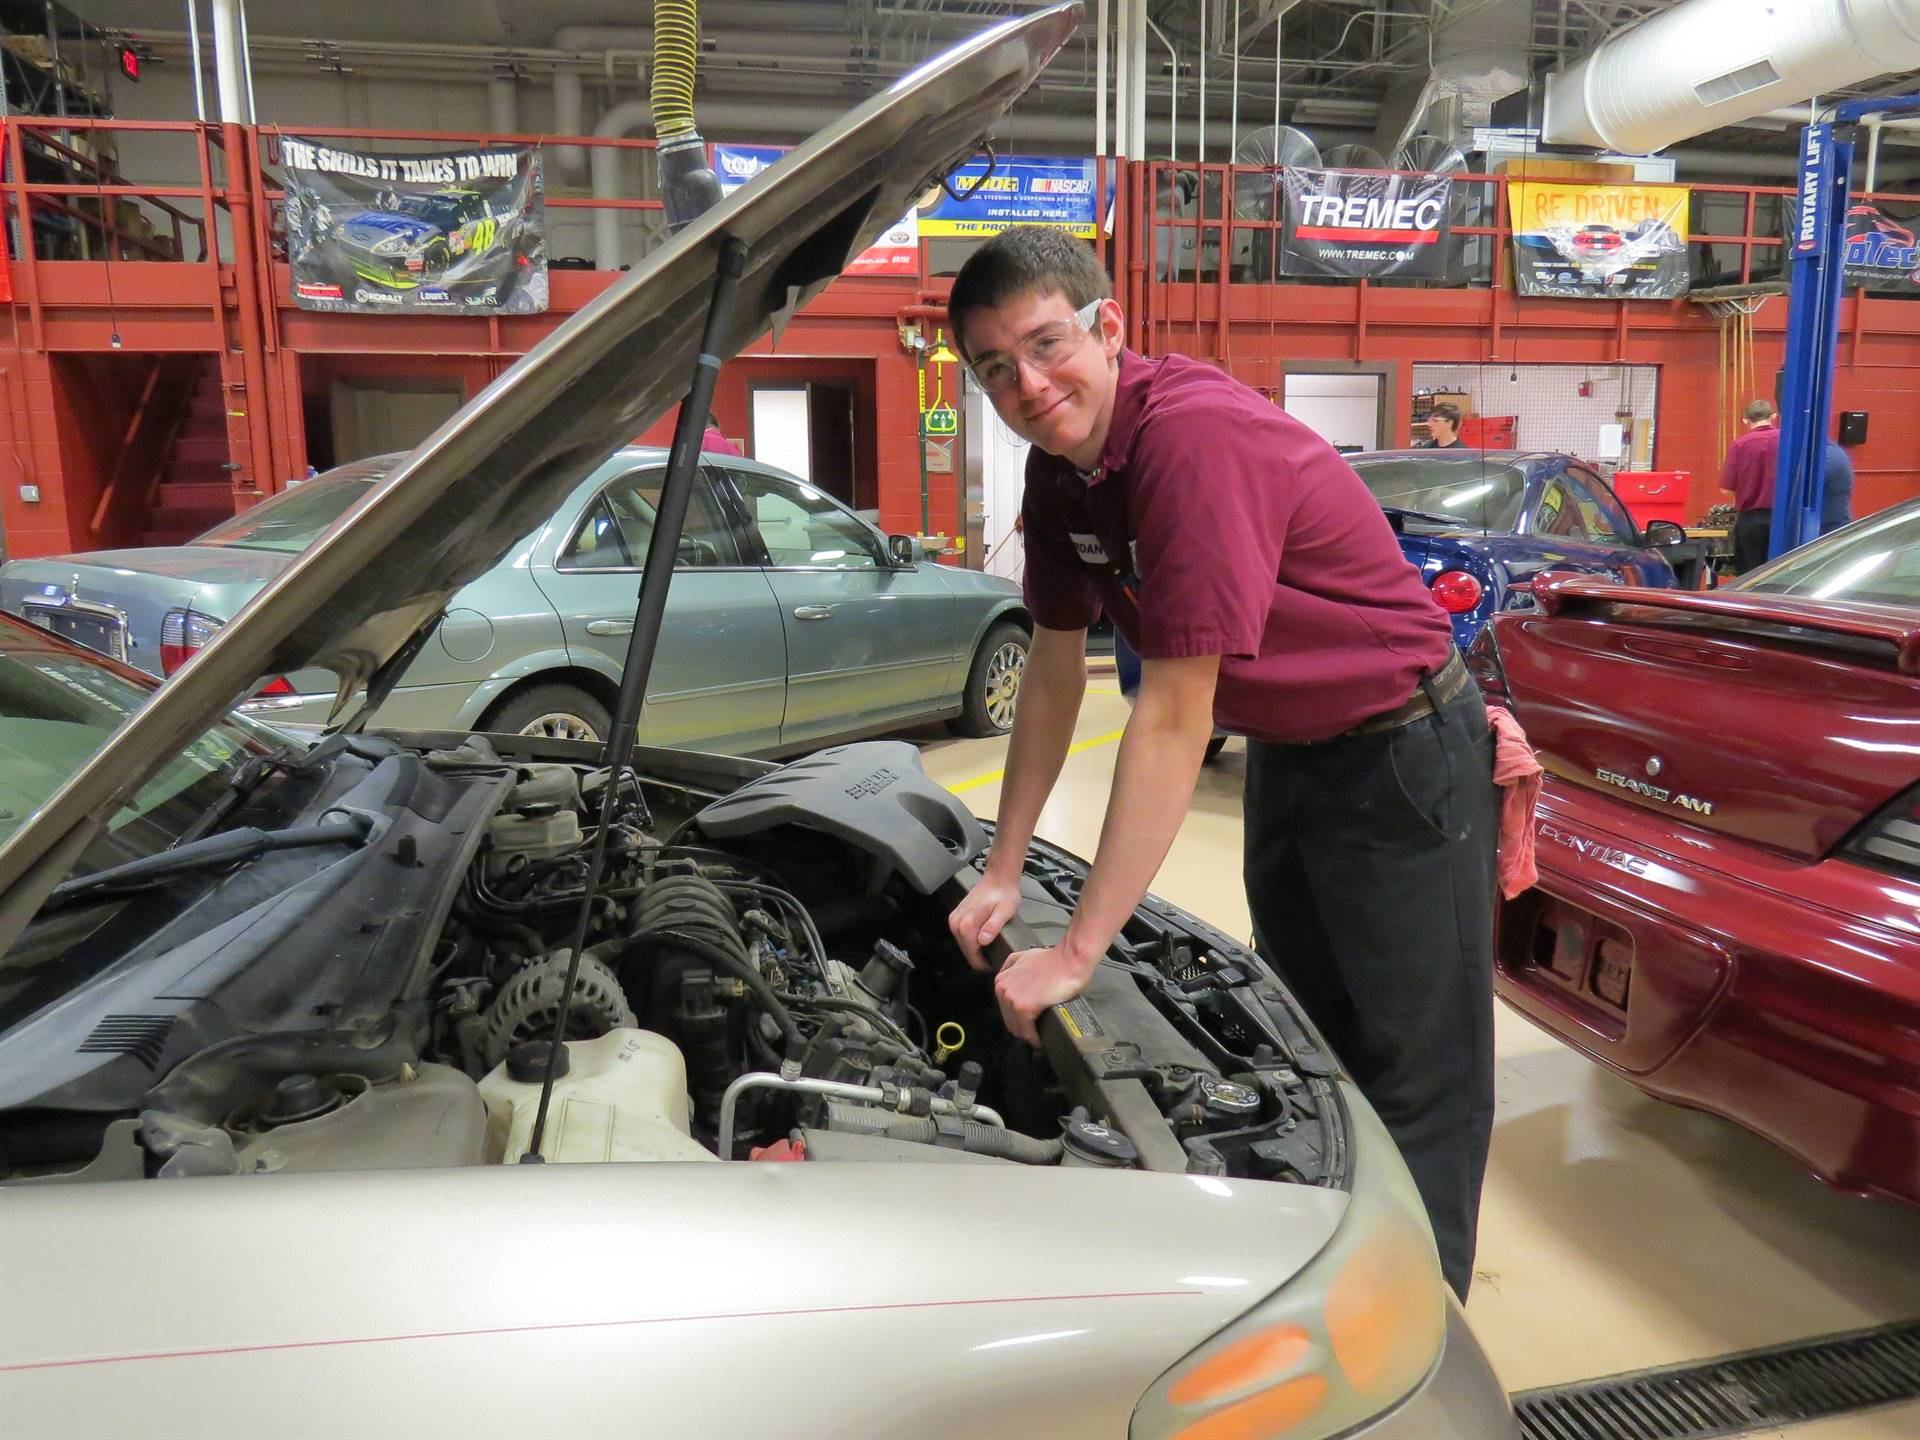 Auto Technology student is running diagnostics on vehicle.